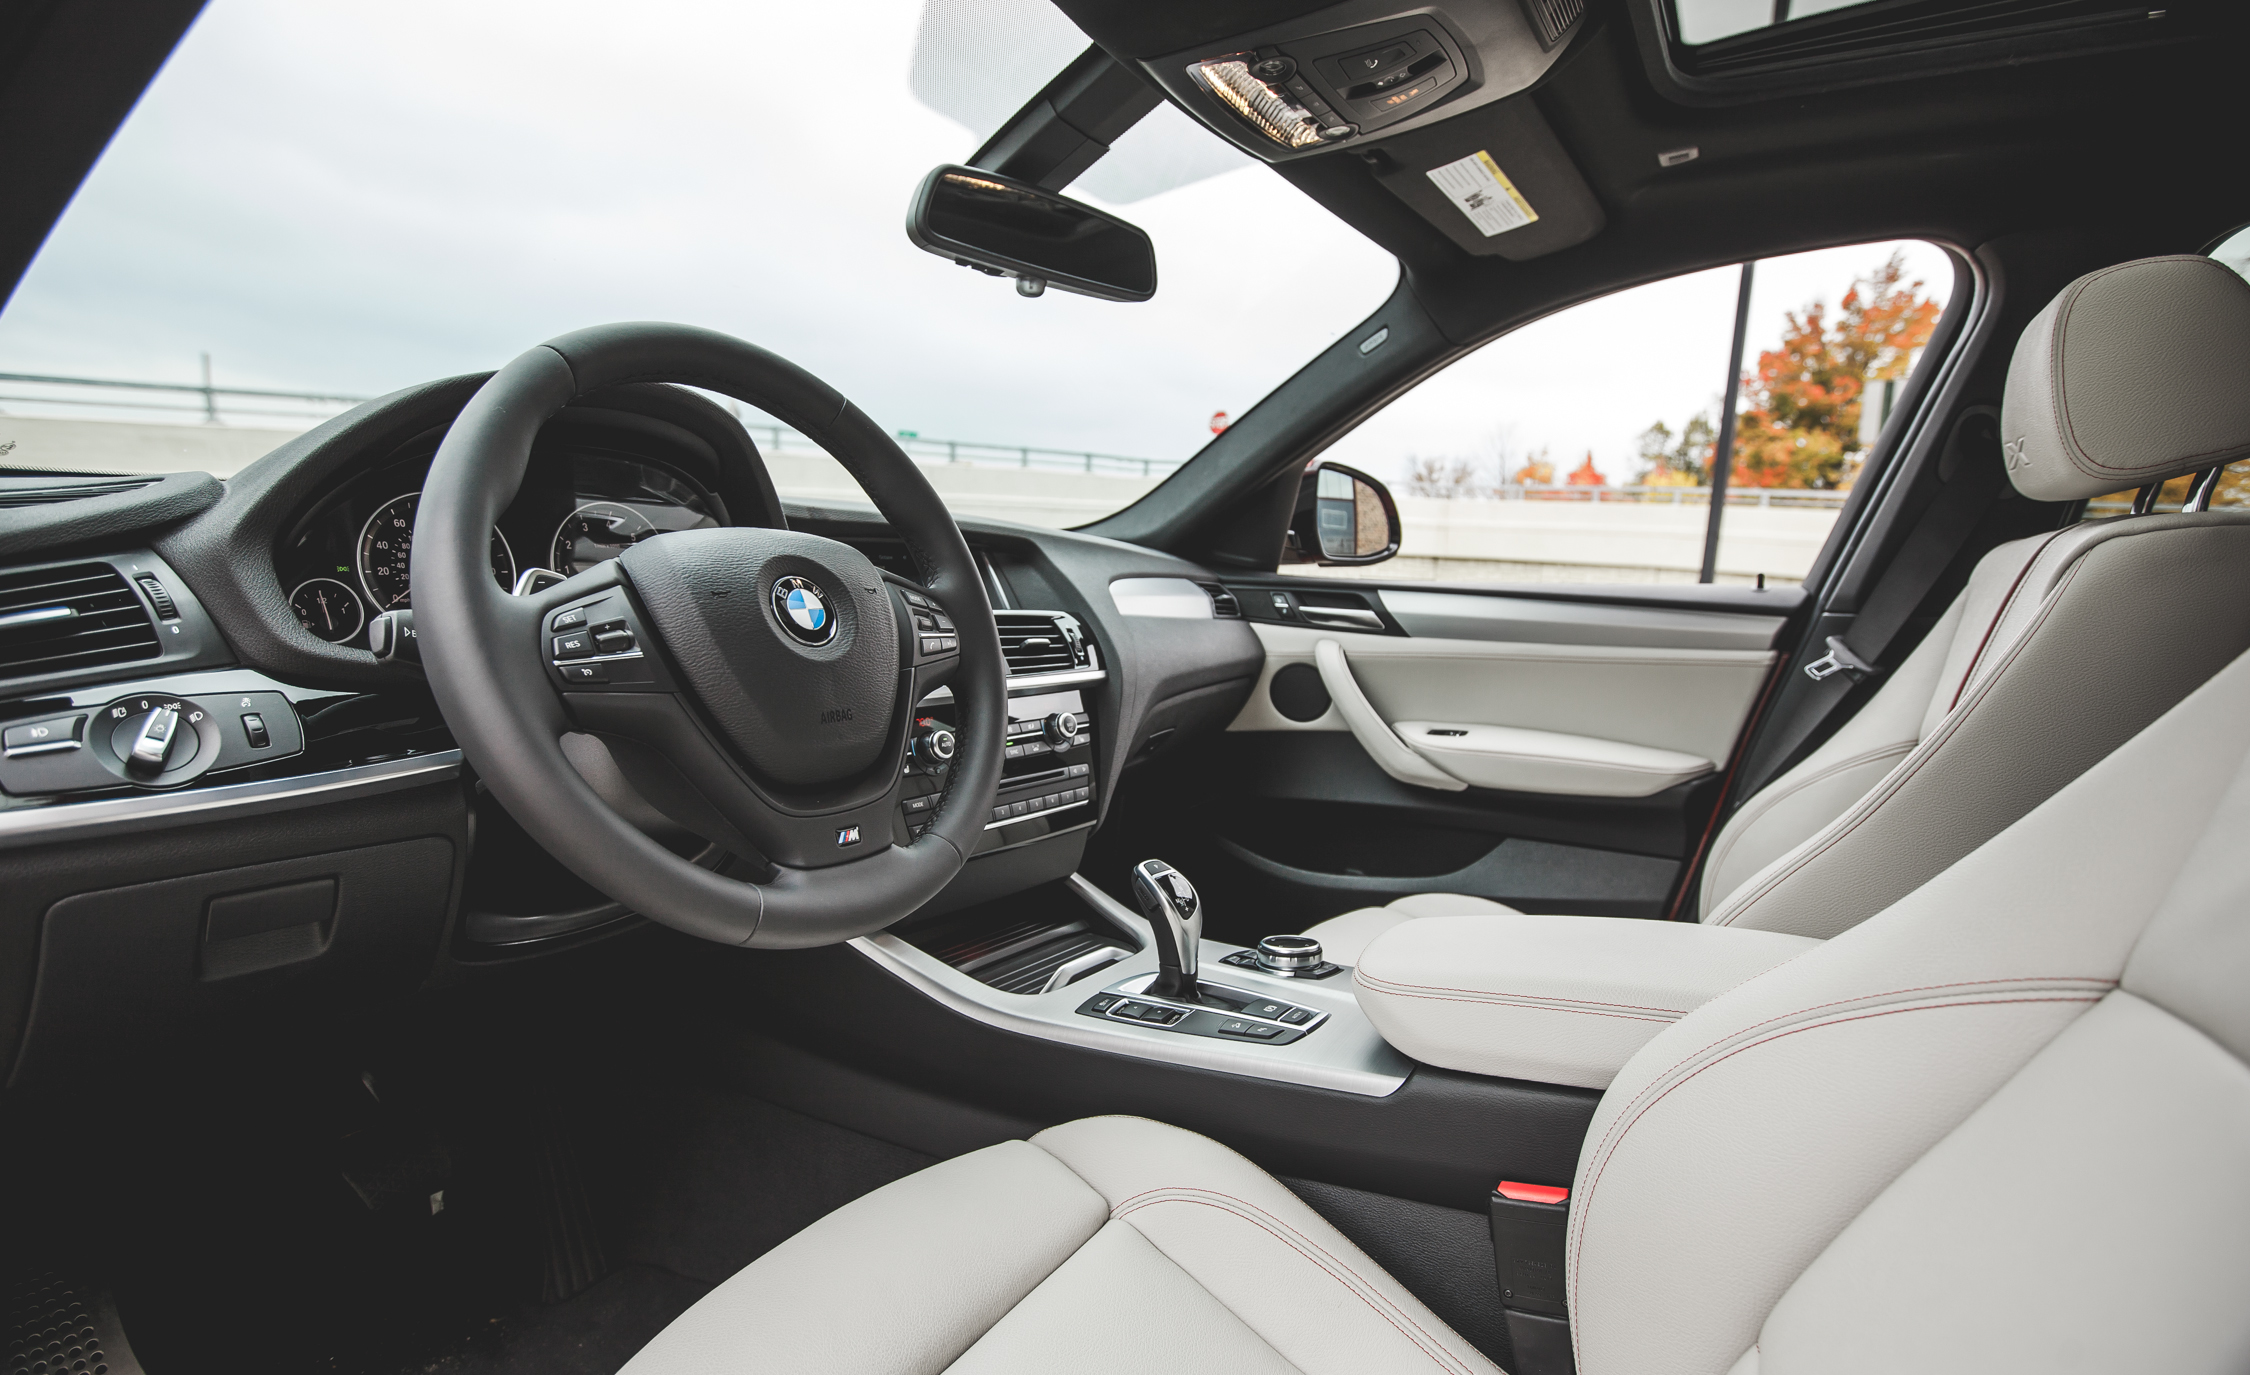 2015 BMW X4 XDrive28i Interior (View 25 of 29)